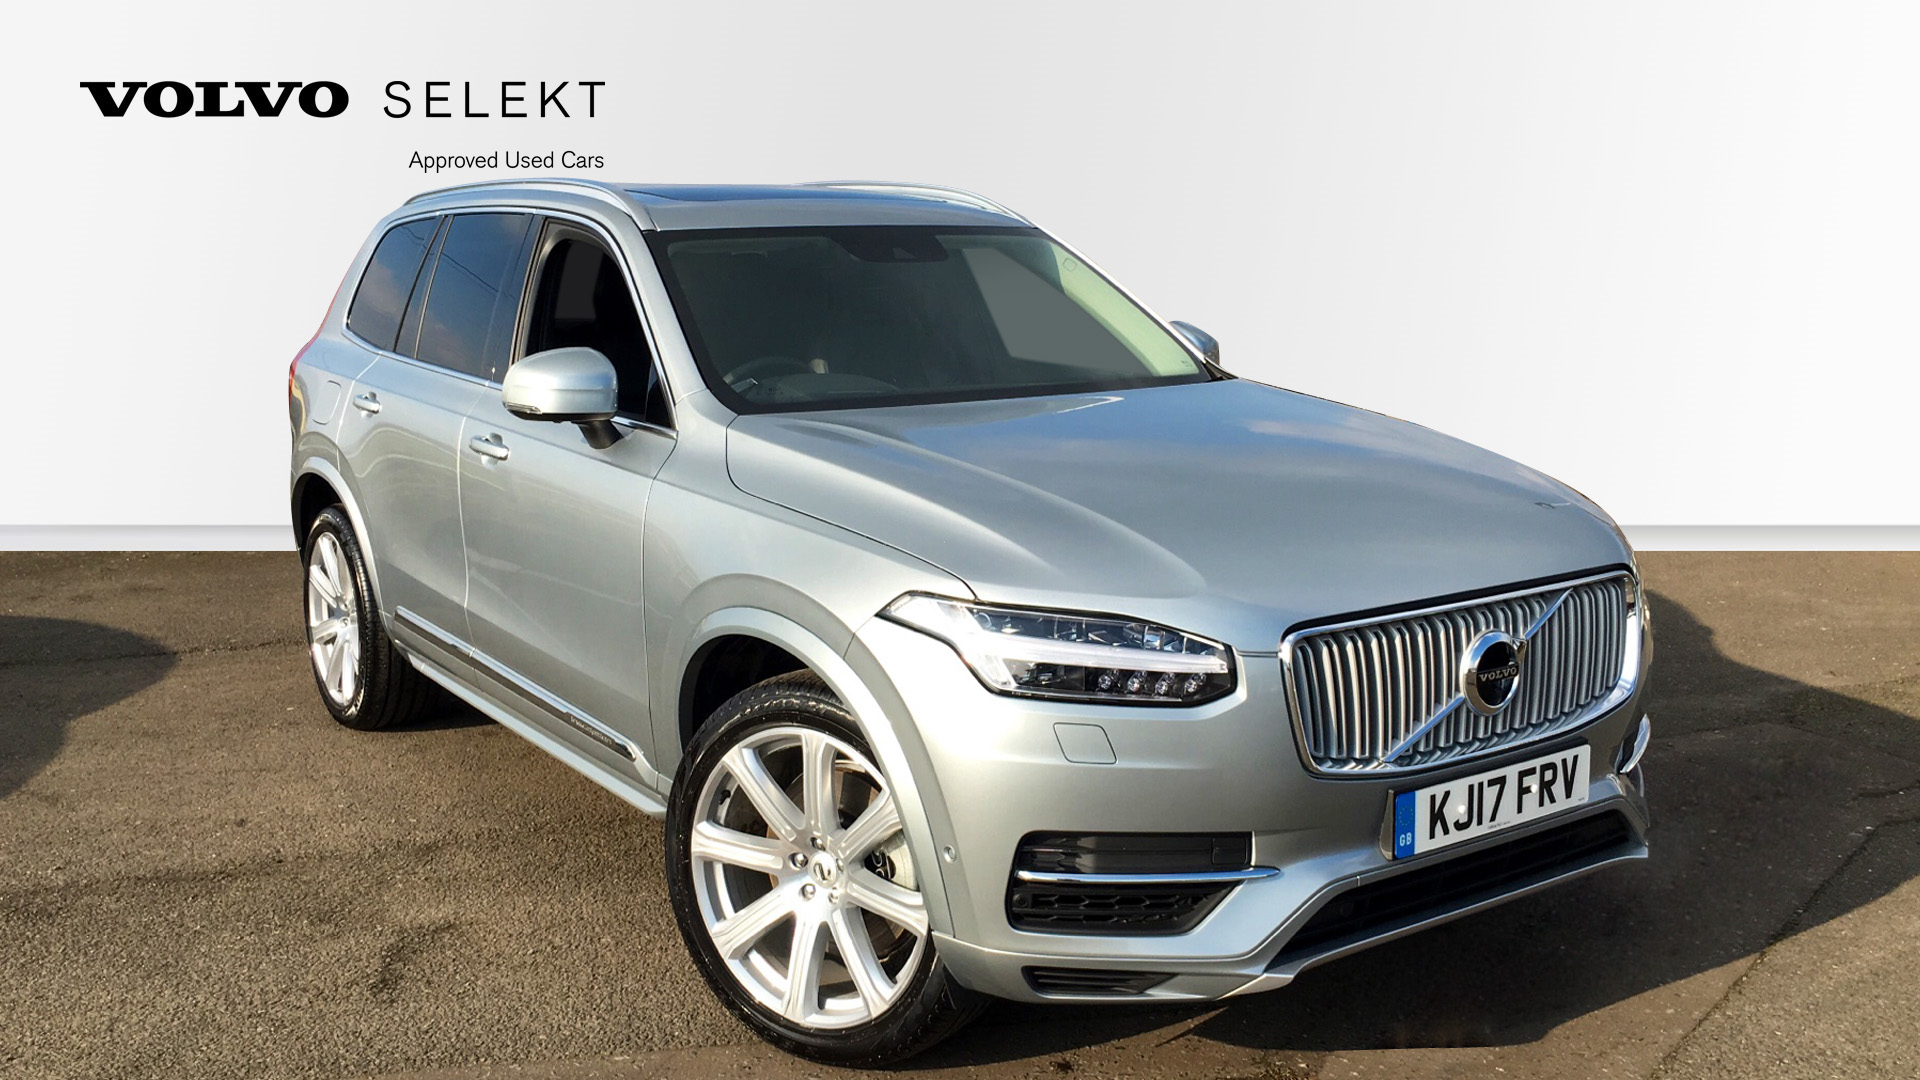 volvo xc90 ii t8 twin engine inscription auto hybrid with xenium family winter packs used. Black Bedroom Furniture Sets. Home Design Ideas